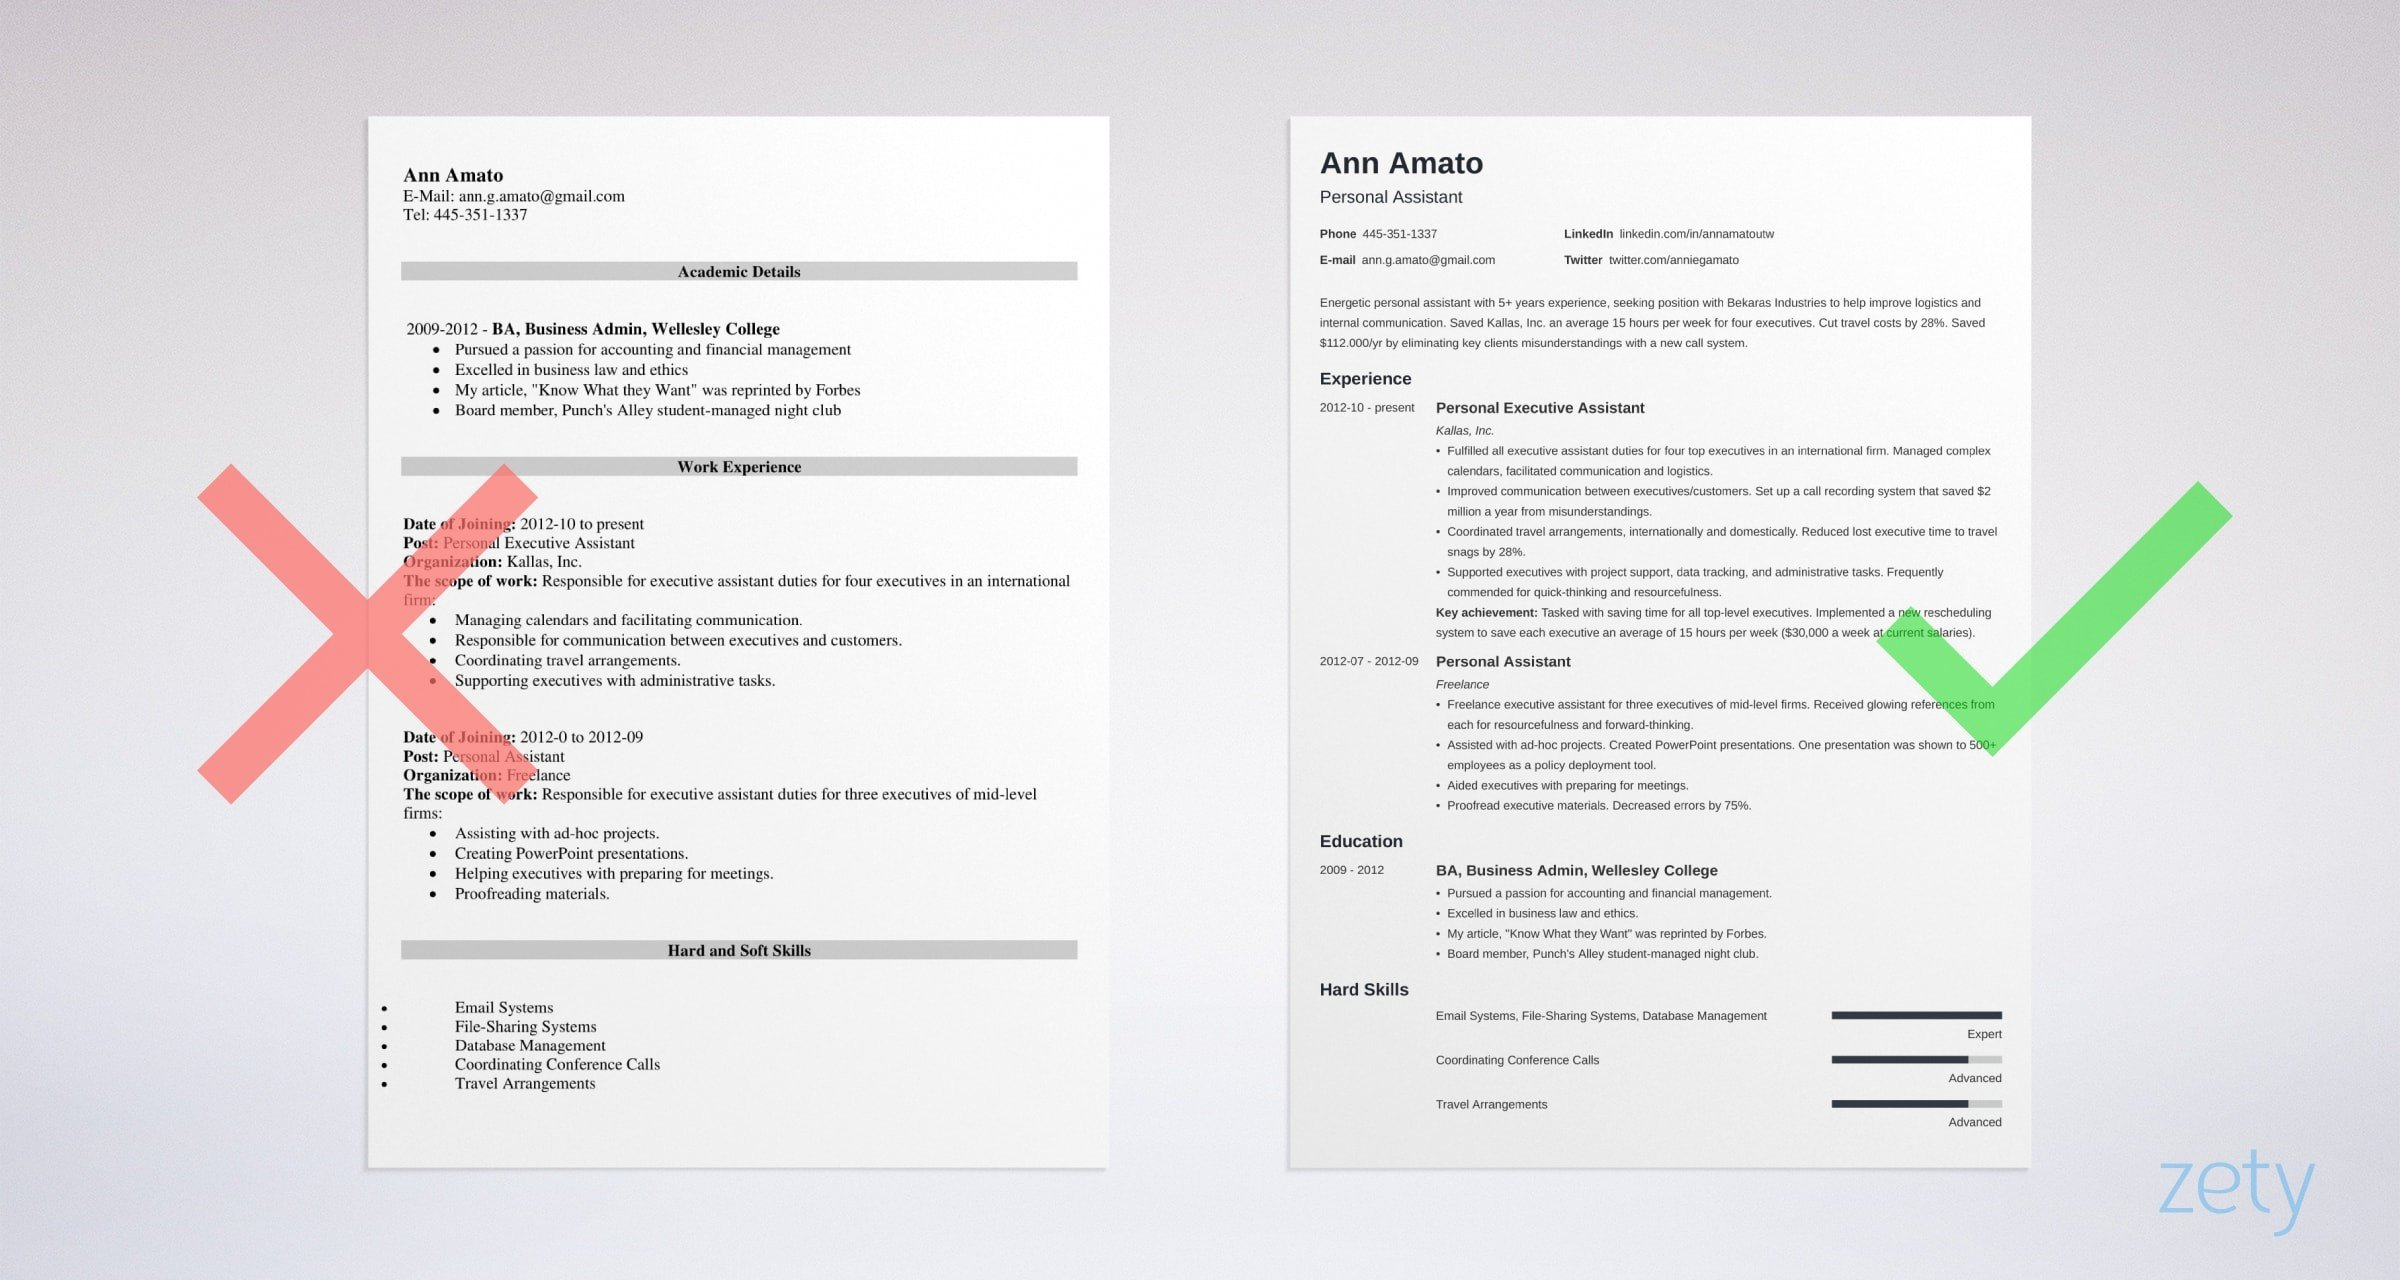 Basic Resume Format.Best Resume Format 10 Samples For All Types Of Resumes